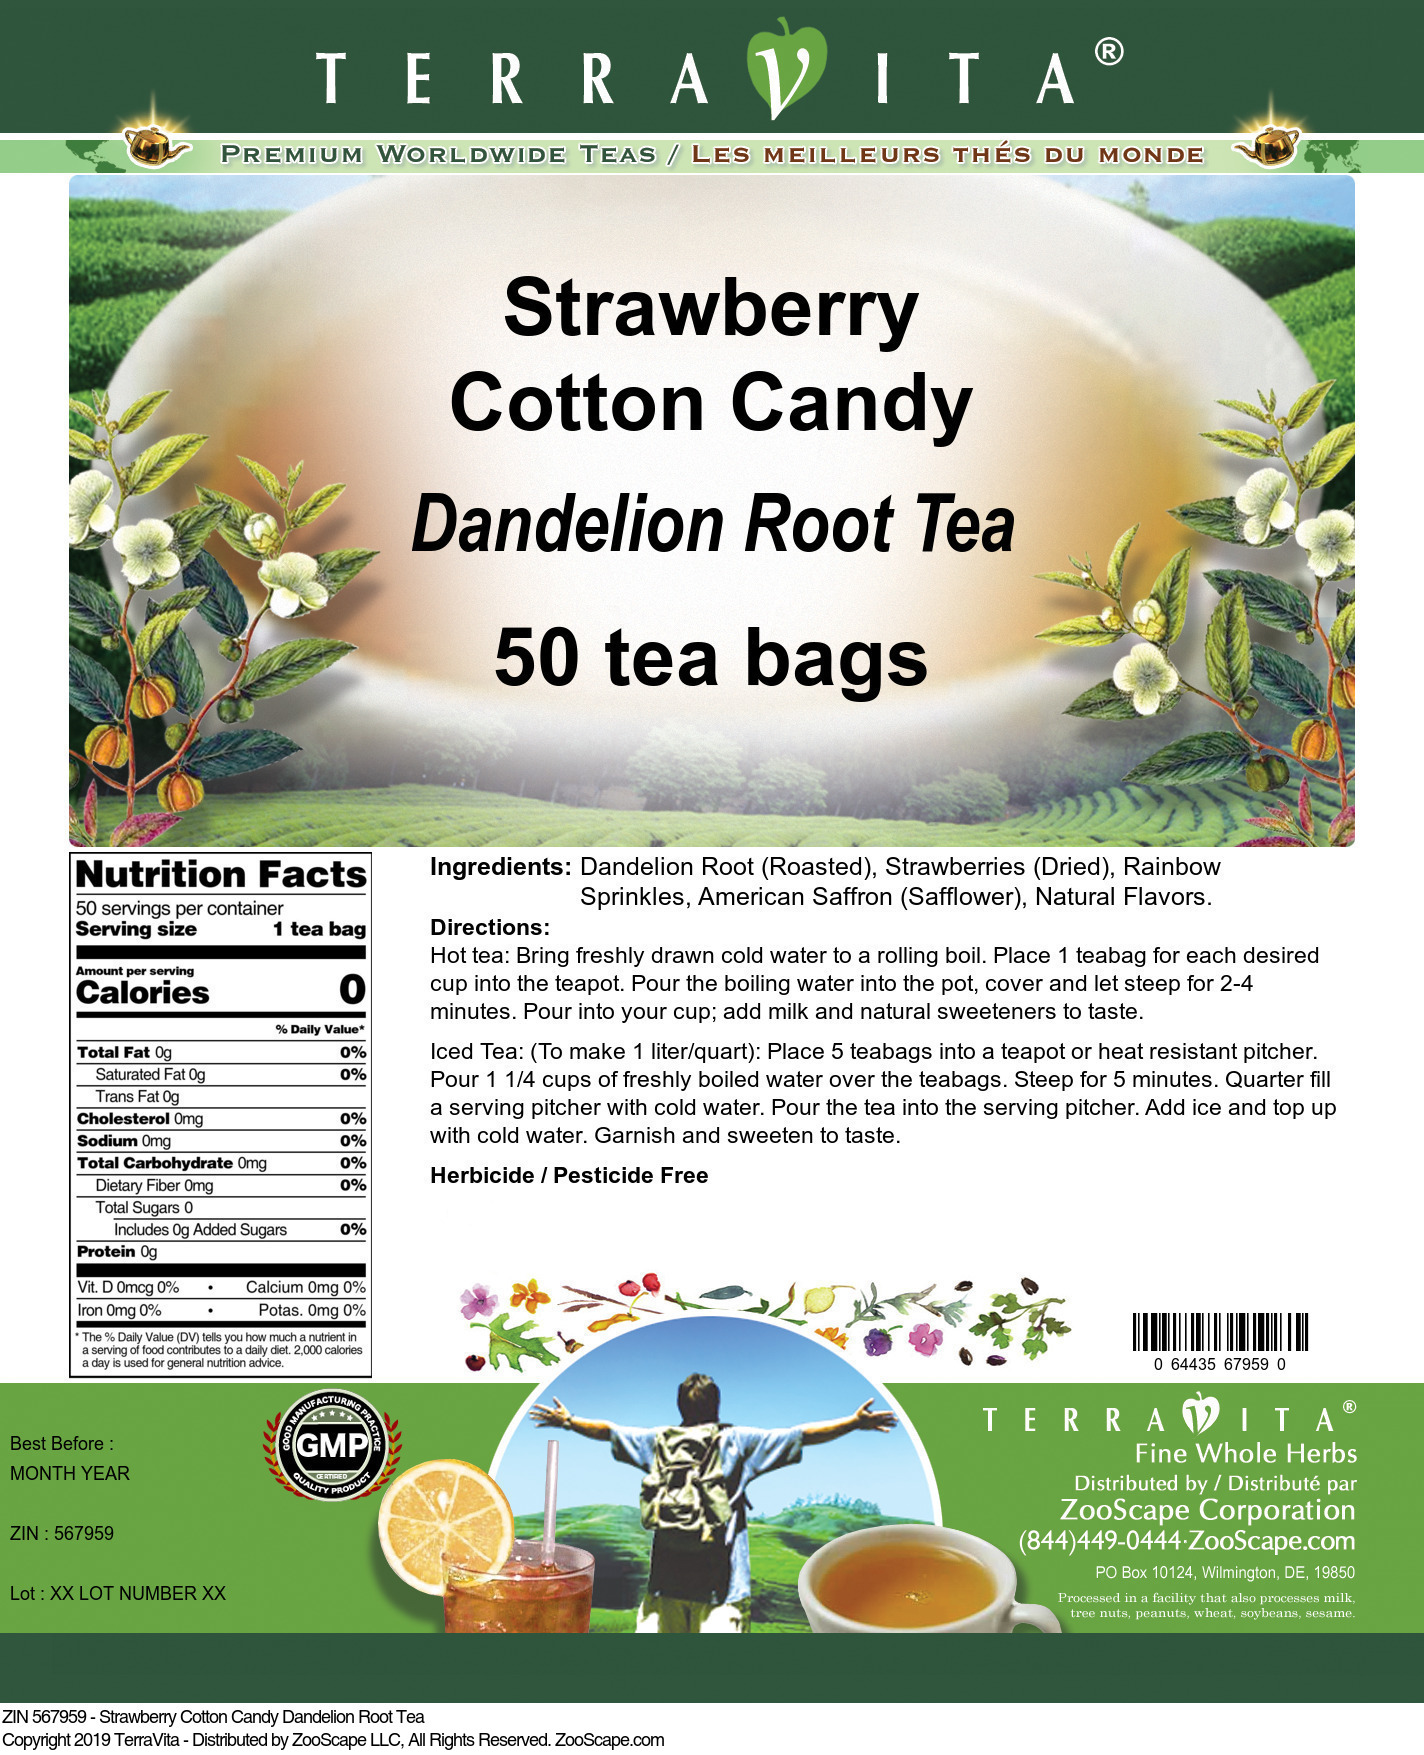 Strawberry Cotton Candy Dandelion Root